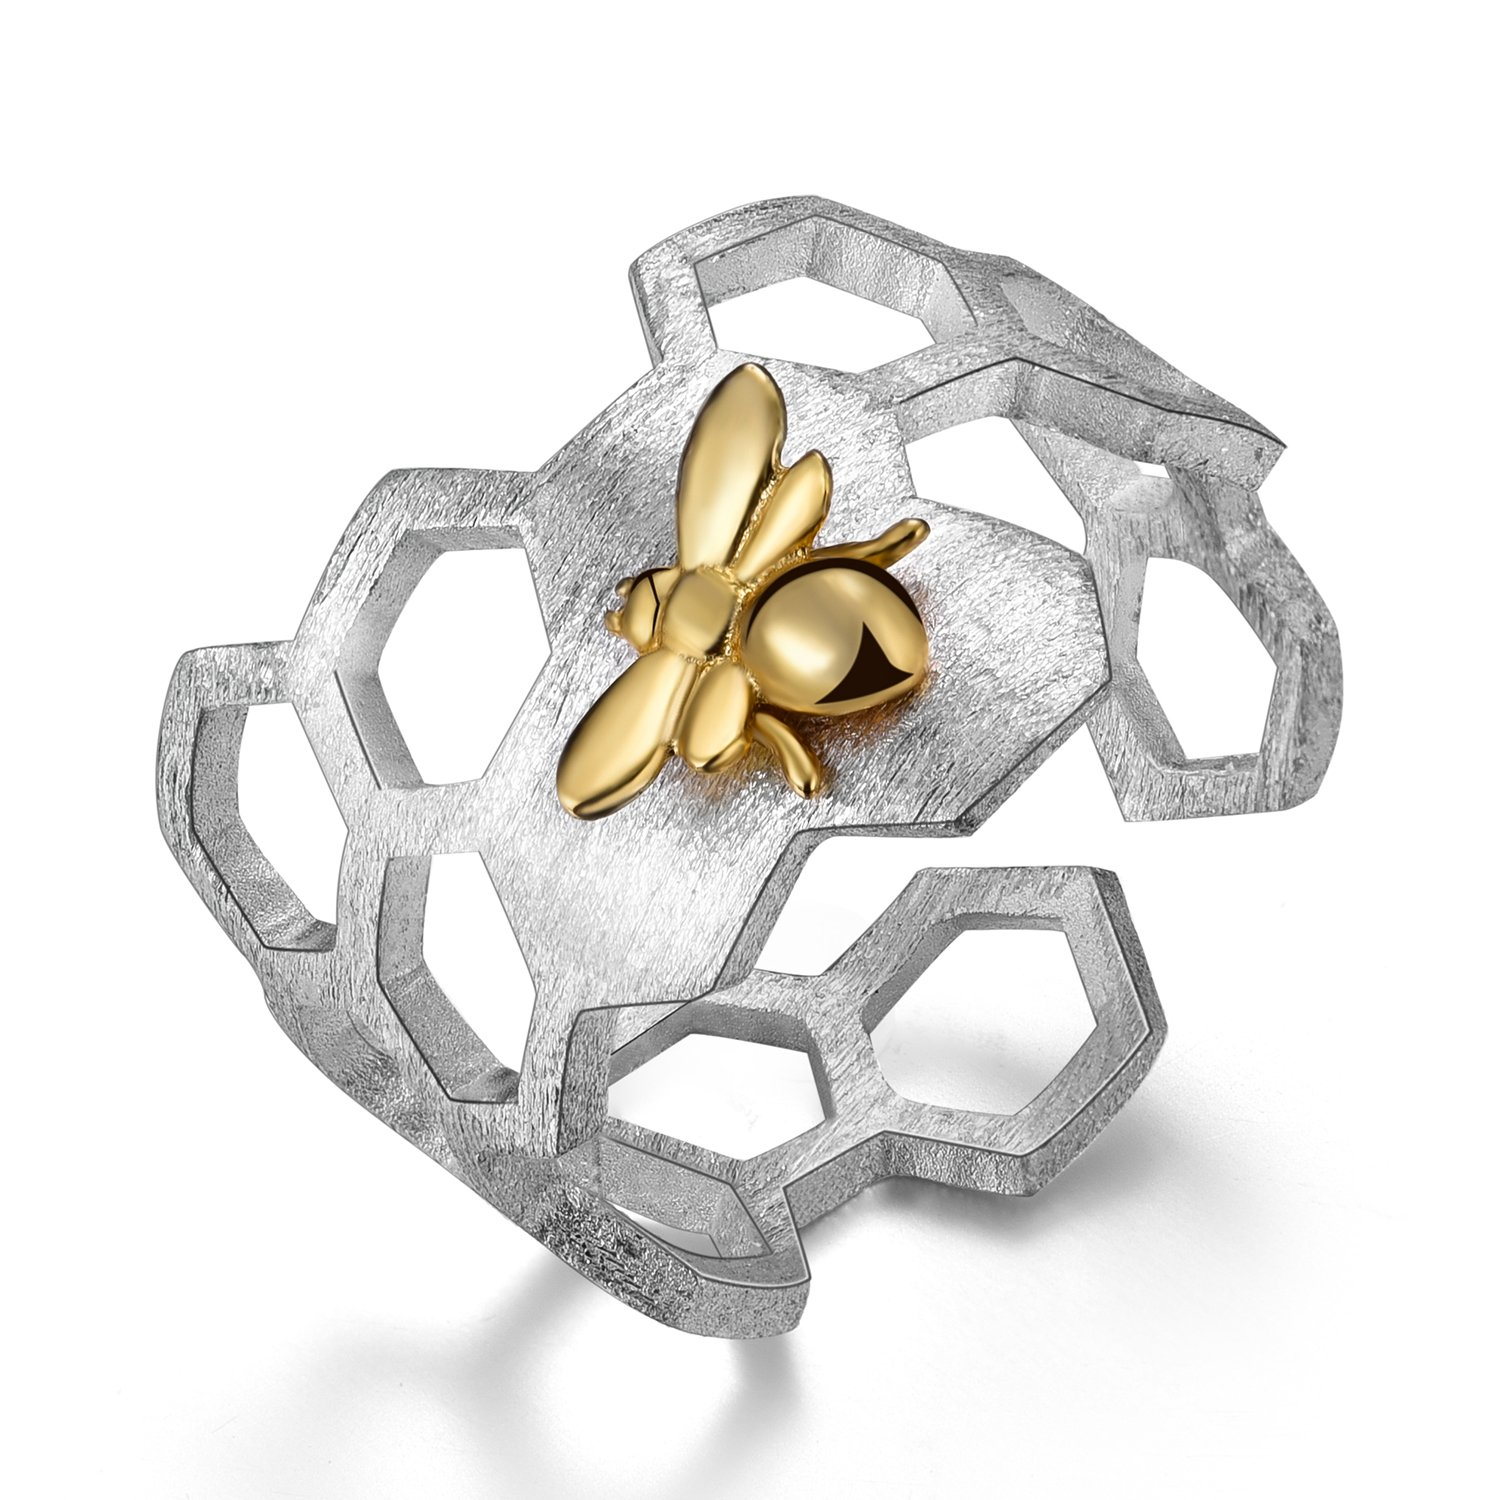 Lotus Fun S925 Sterling Silver Rings Handmade Unique Thumb Ring Natural Open Honeycomb Bee Jewelry for Women and Girls